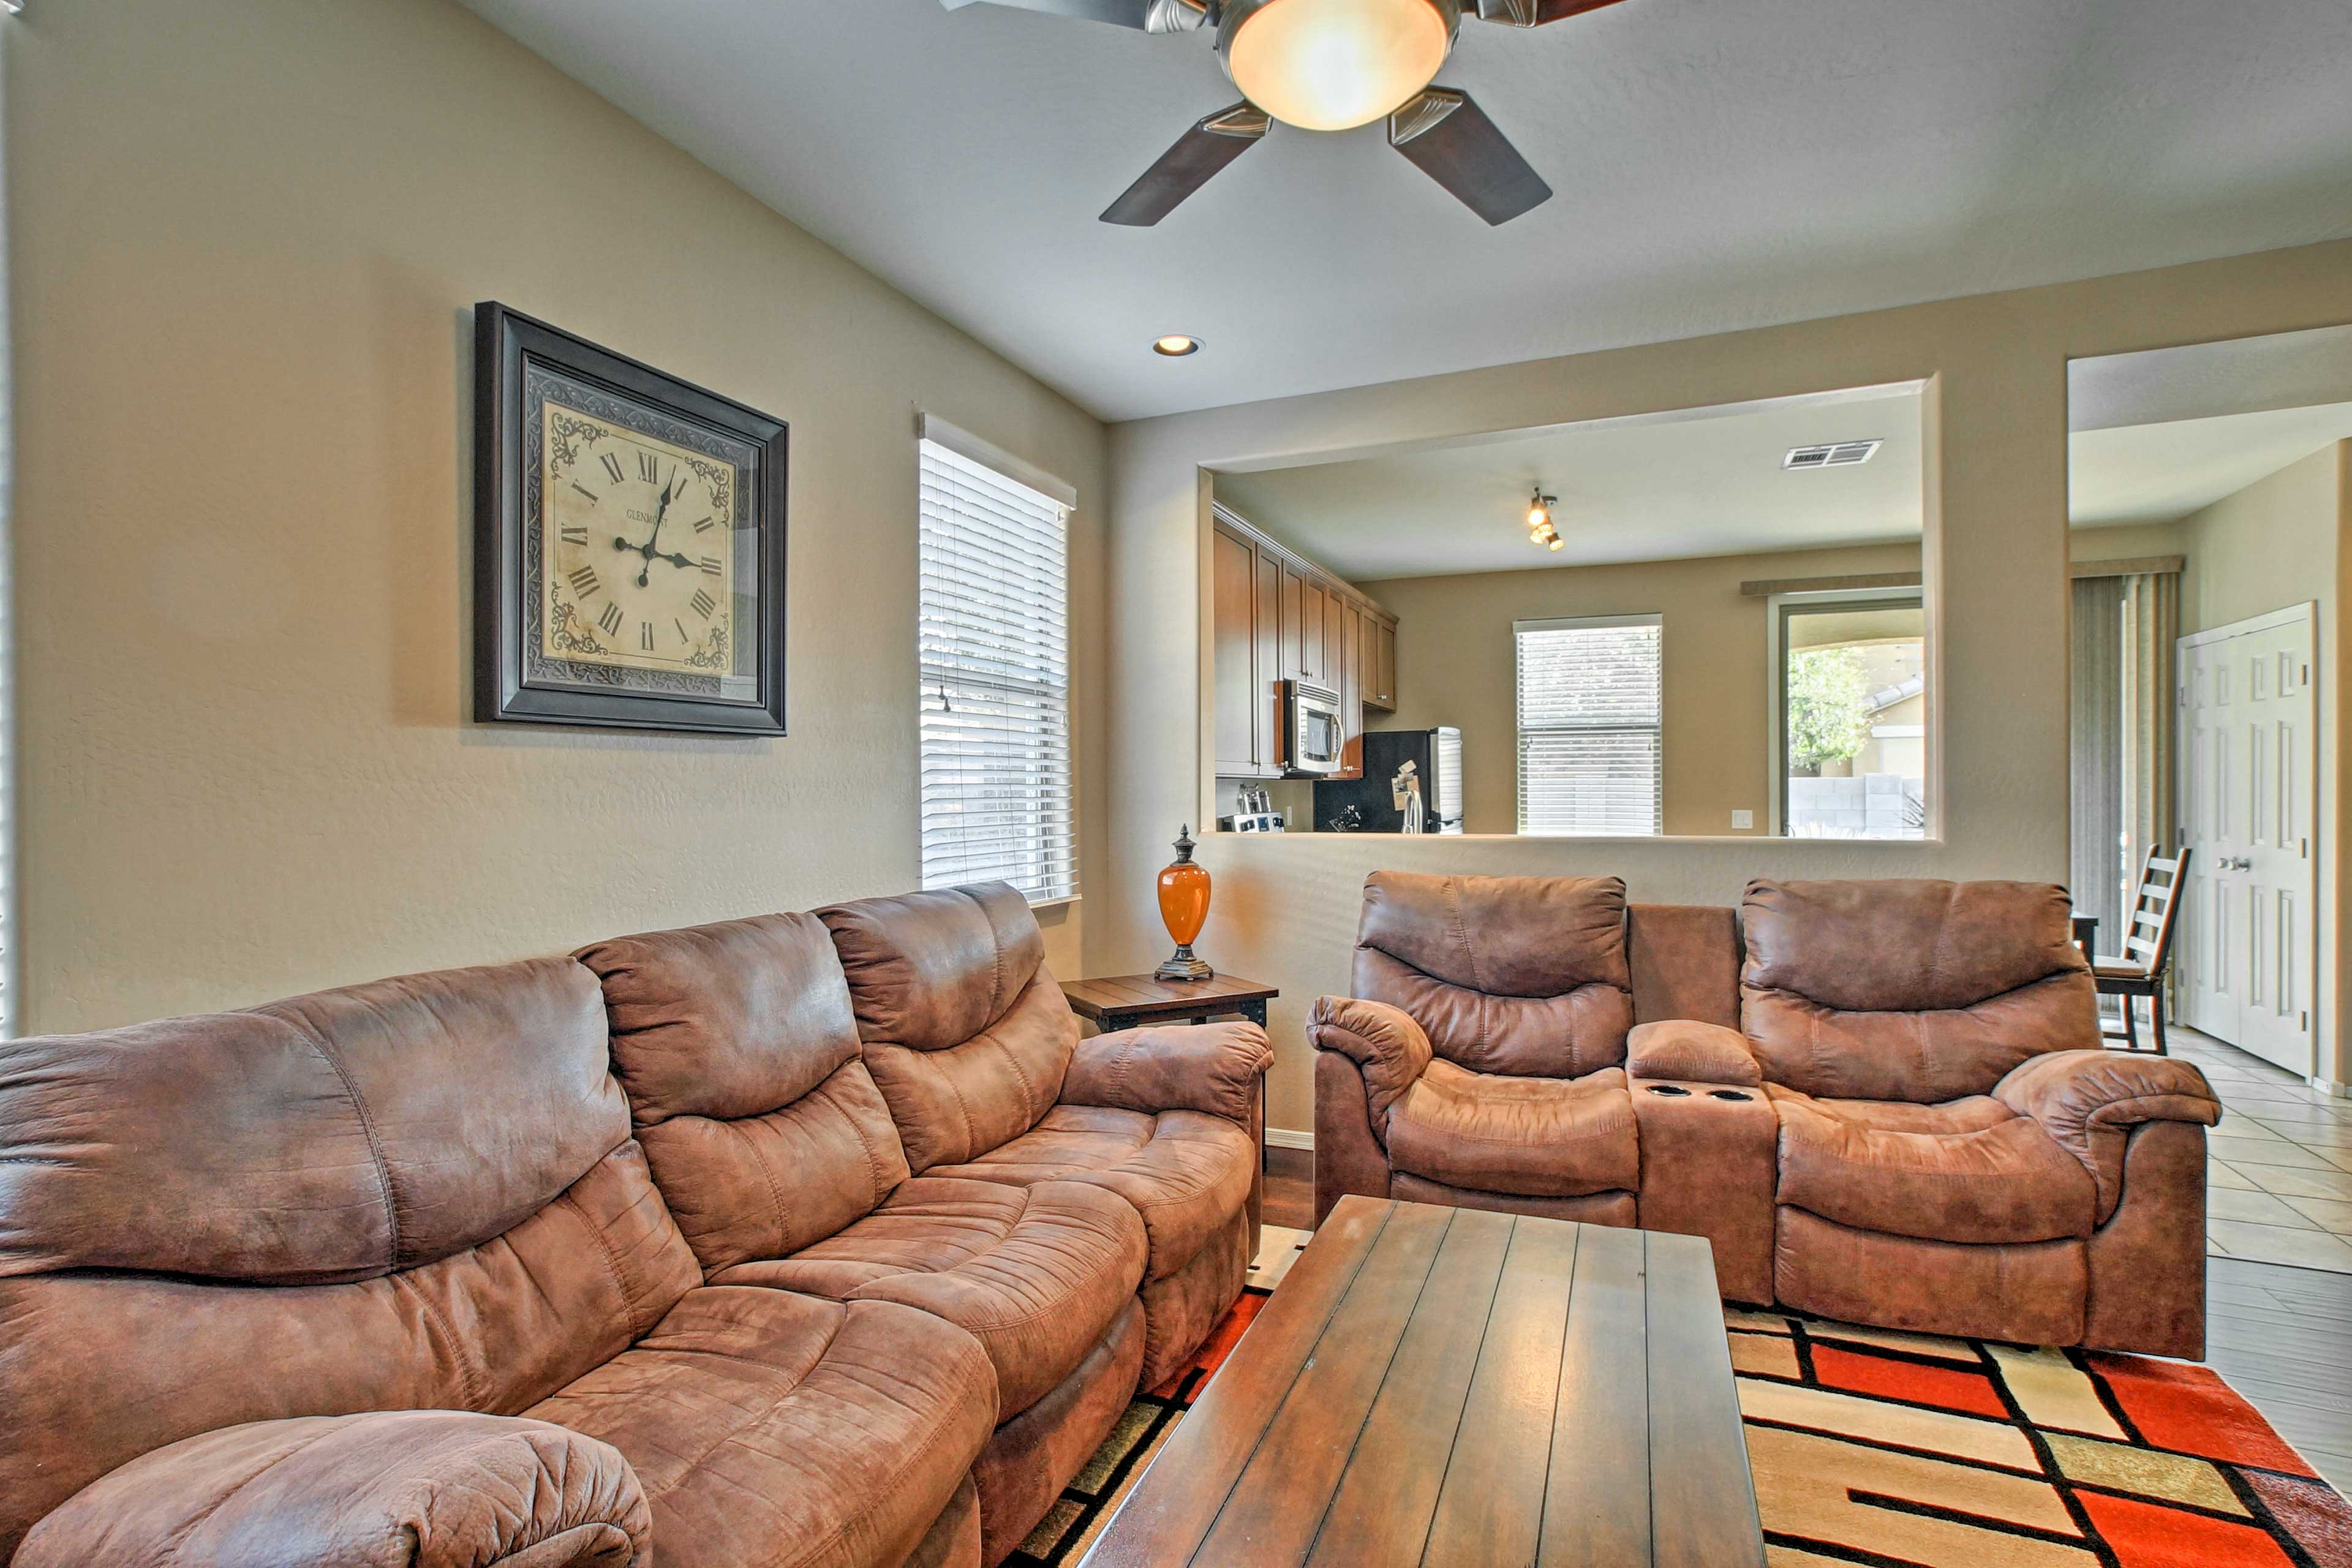 Settle into the leather sofa or matching love seat.